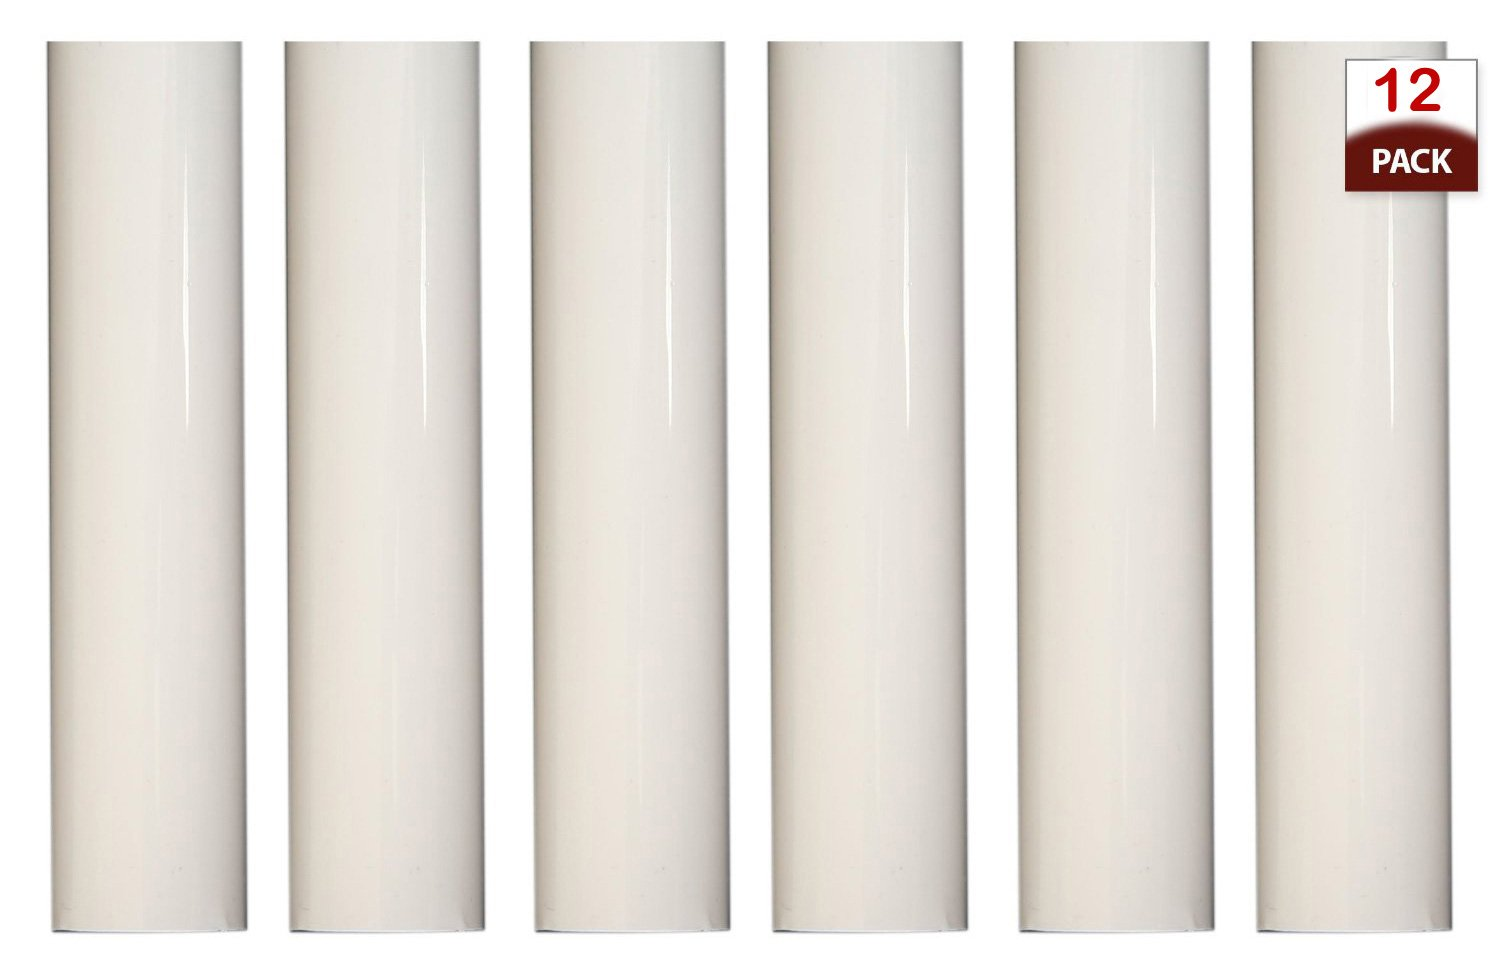 6 Inch Tall White Plastic Candle Covers Sleeves Chandelier Socket Covers ~Candelabra Base 1752 Creative Hobbies Set of 12